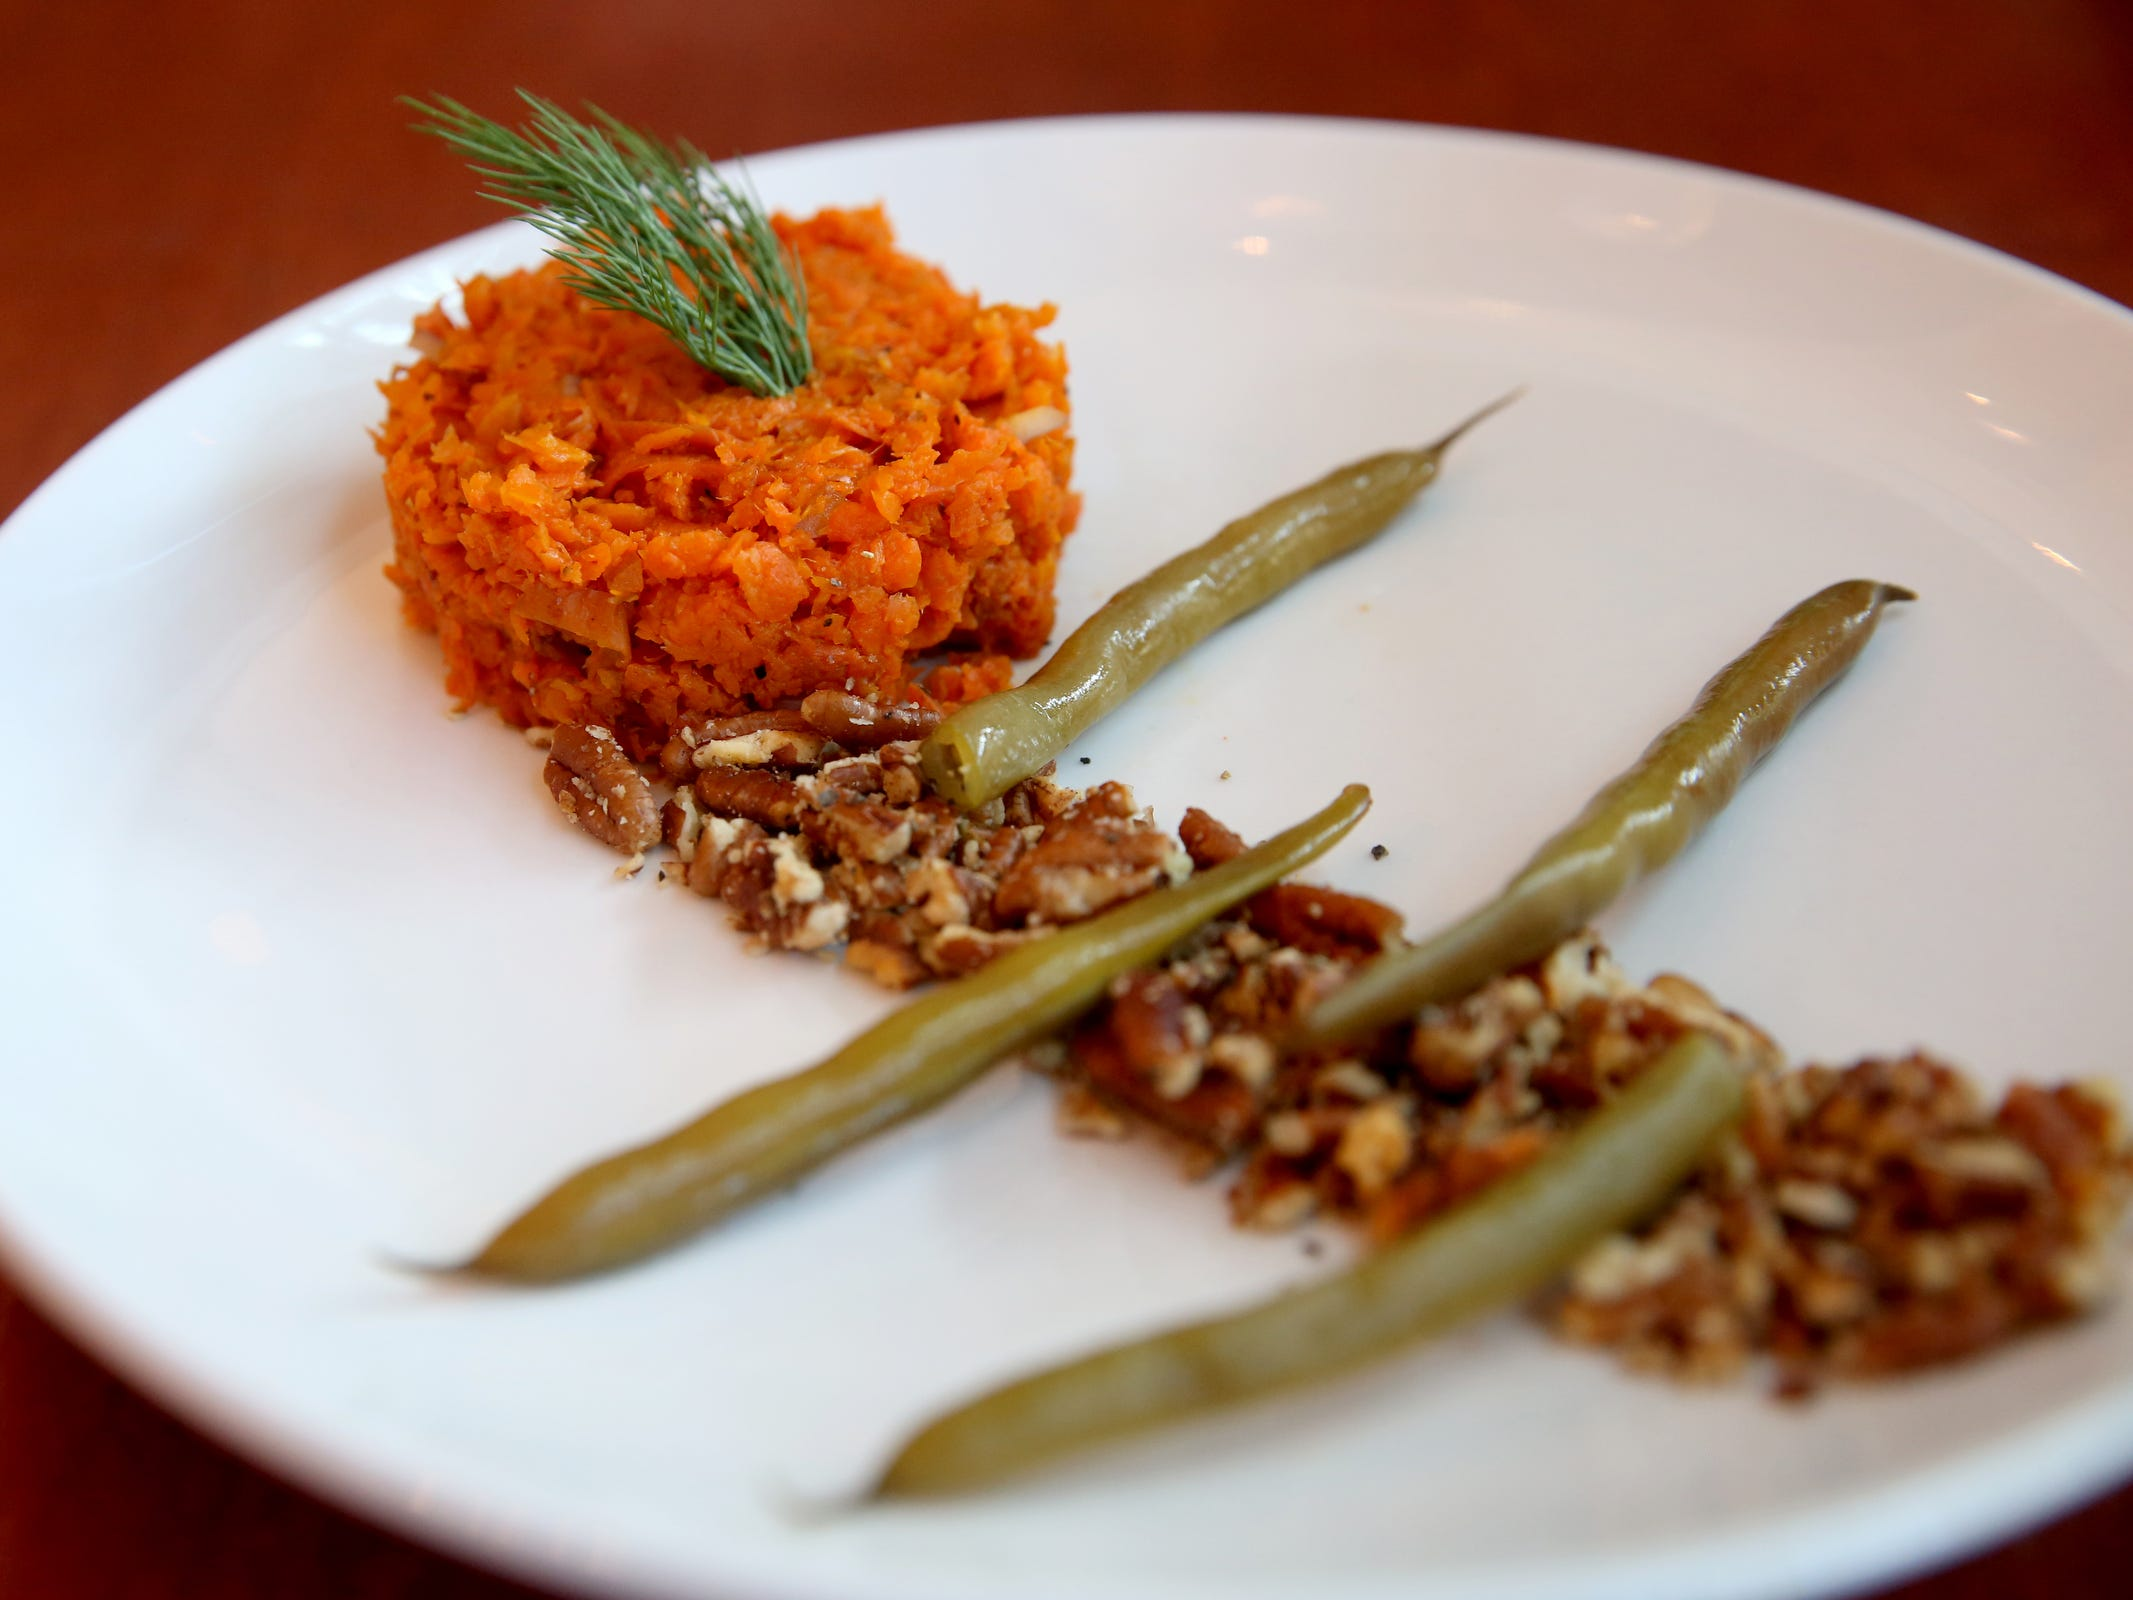 The carrot tartare with roasted carrot, shallot, spiced pecans and dilly beans at Epilogue Kitchen & Cocktails in Salem on March 20, 2019. The restaurant opens in downtown Salem on Friday.